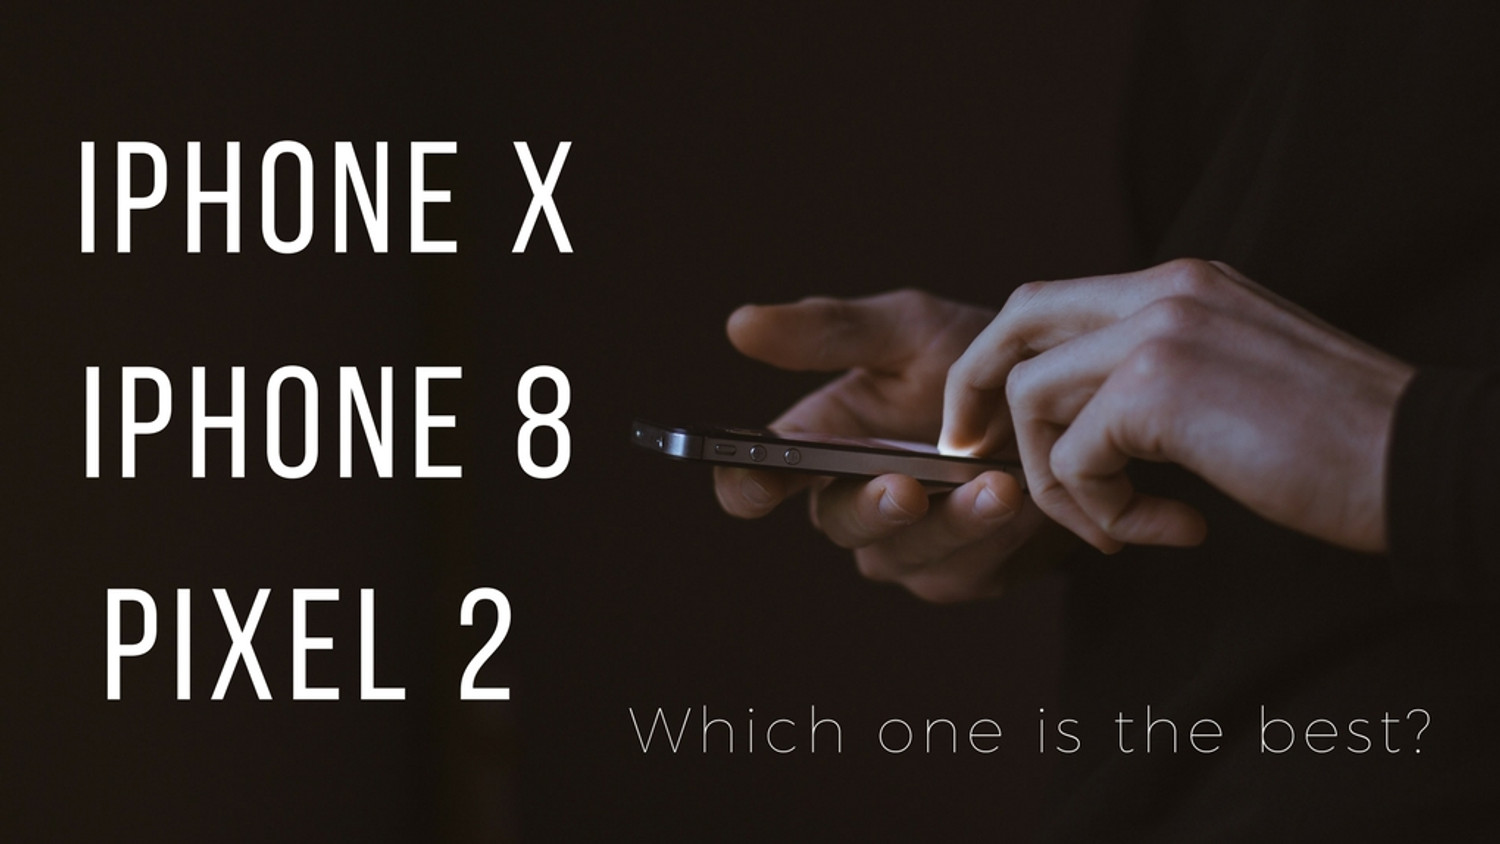 The iPhone X, iPhone 8, and Pixel 2: Which is the Best?